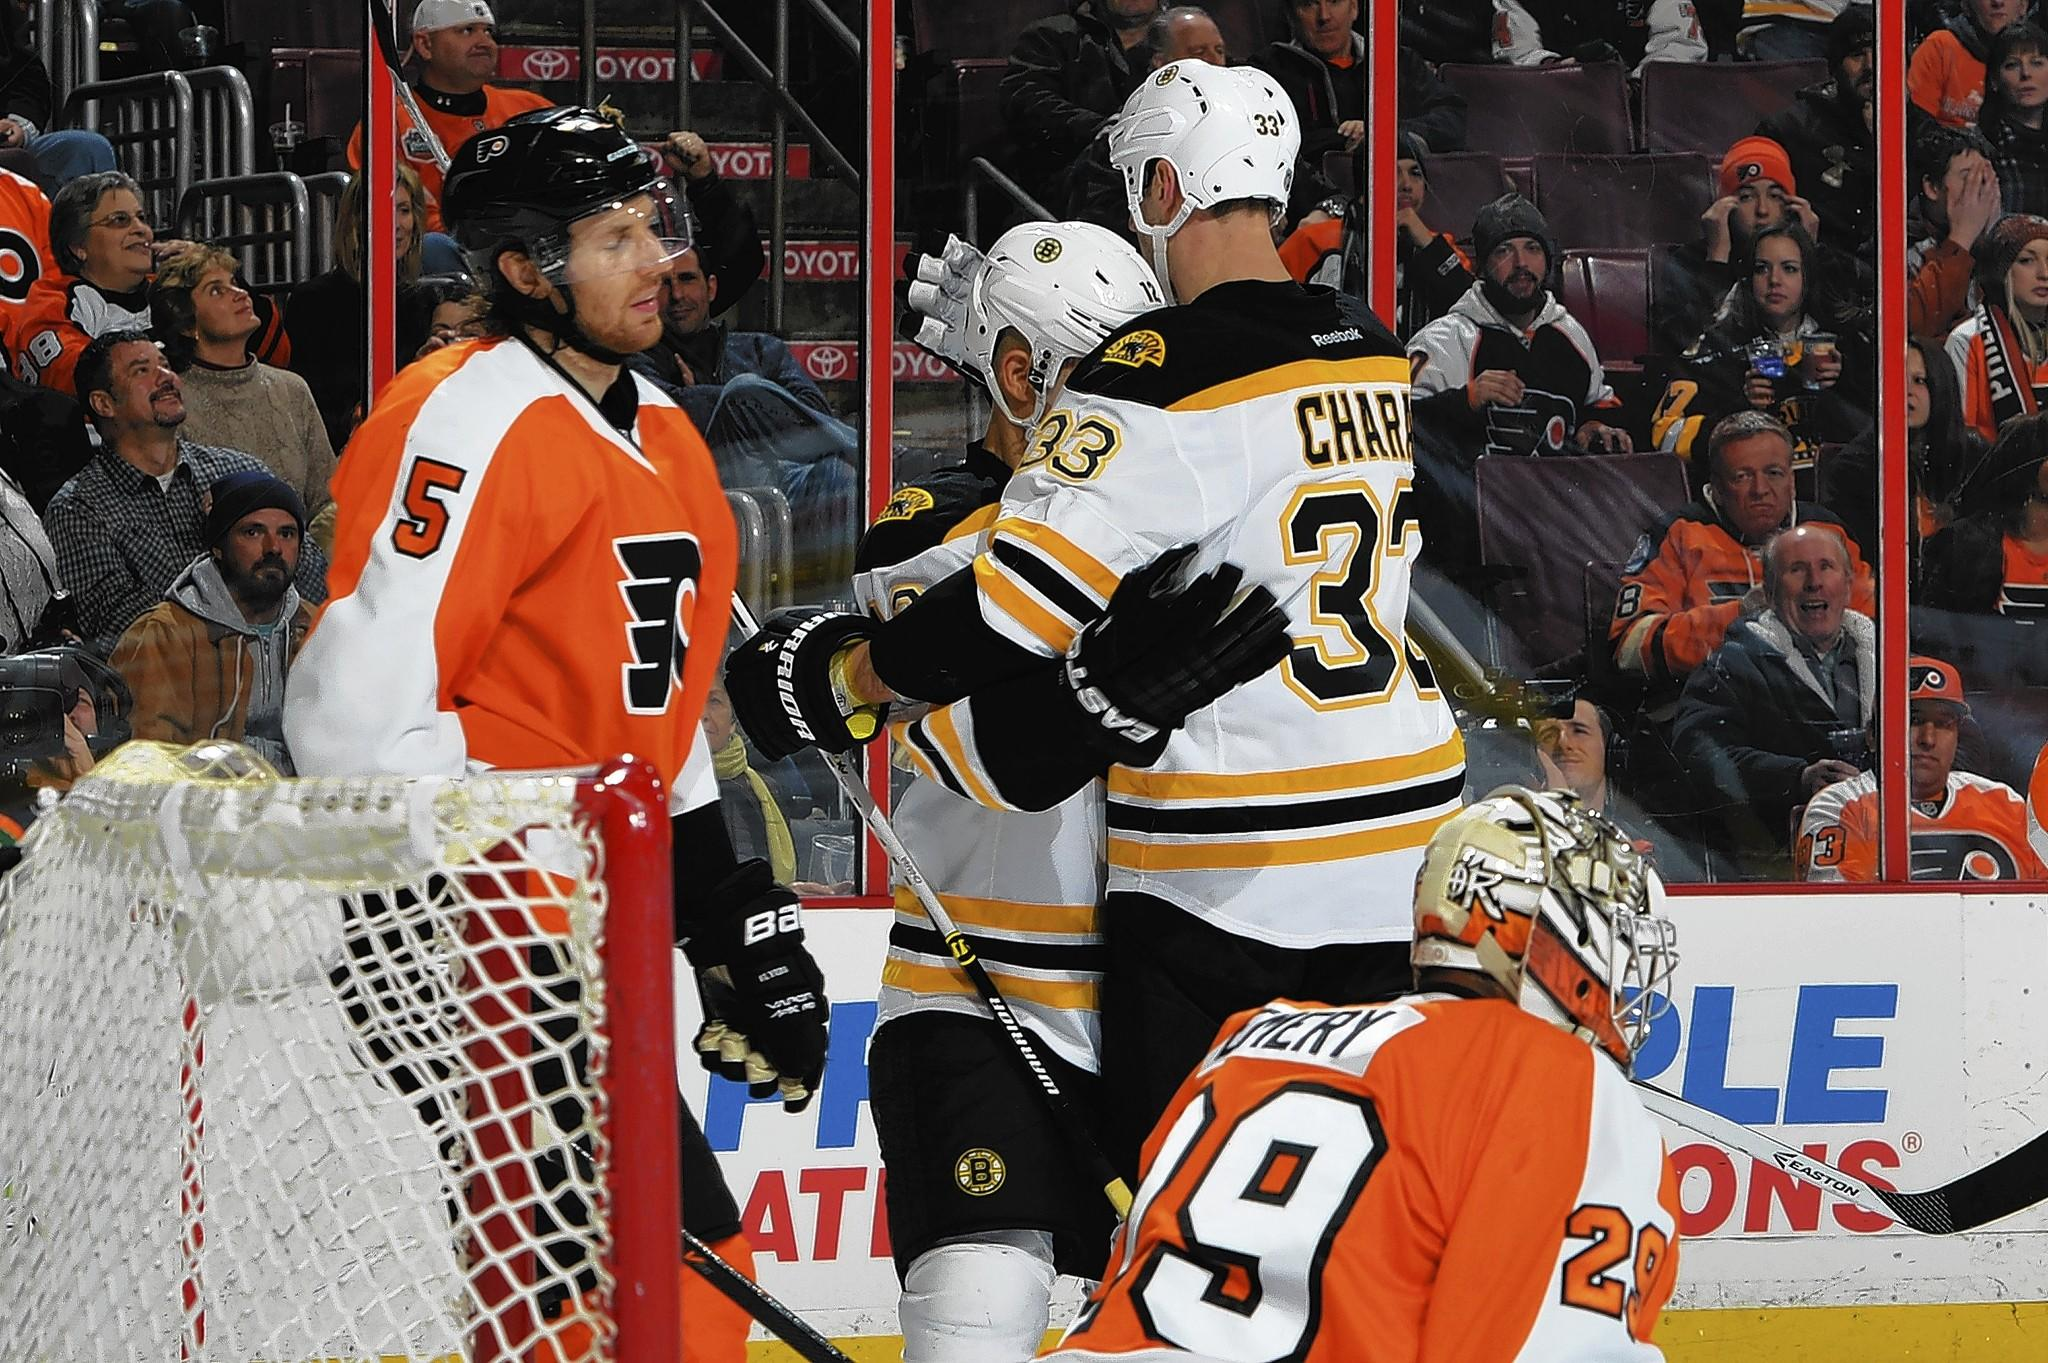 Jarome Iginla #12 and Zdeno Chara #33 of the Boston Bruins celebrate a third period goal as Braydon Coburn #5 and Ray Emery #29 of the Philadelphia Flyers react at the Wells Fargo Center on January 25, 2014 in Philadelphia, Pennsylvania.